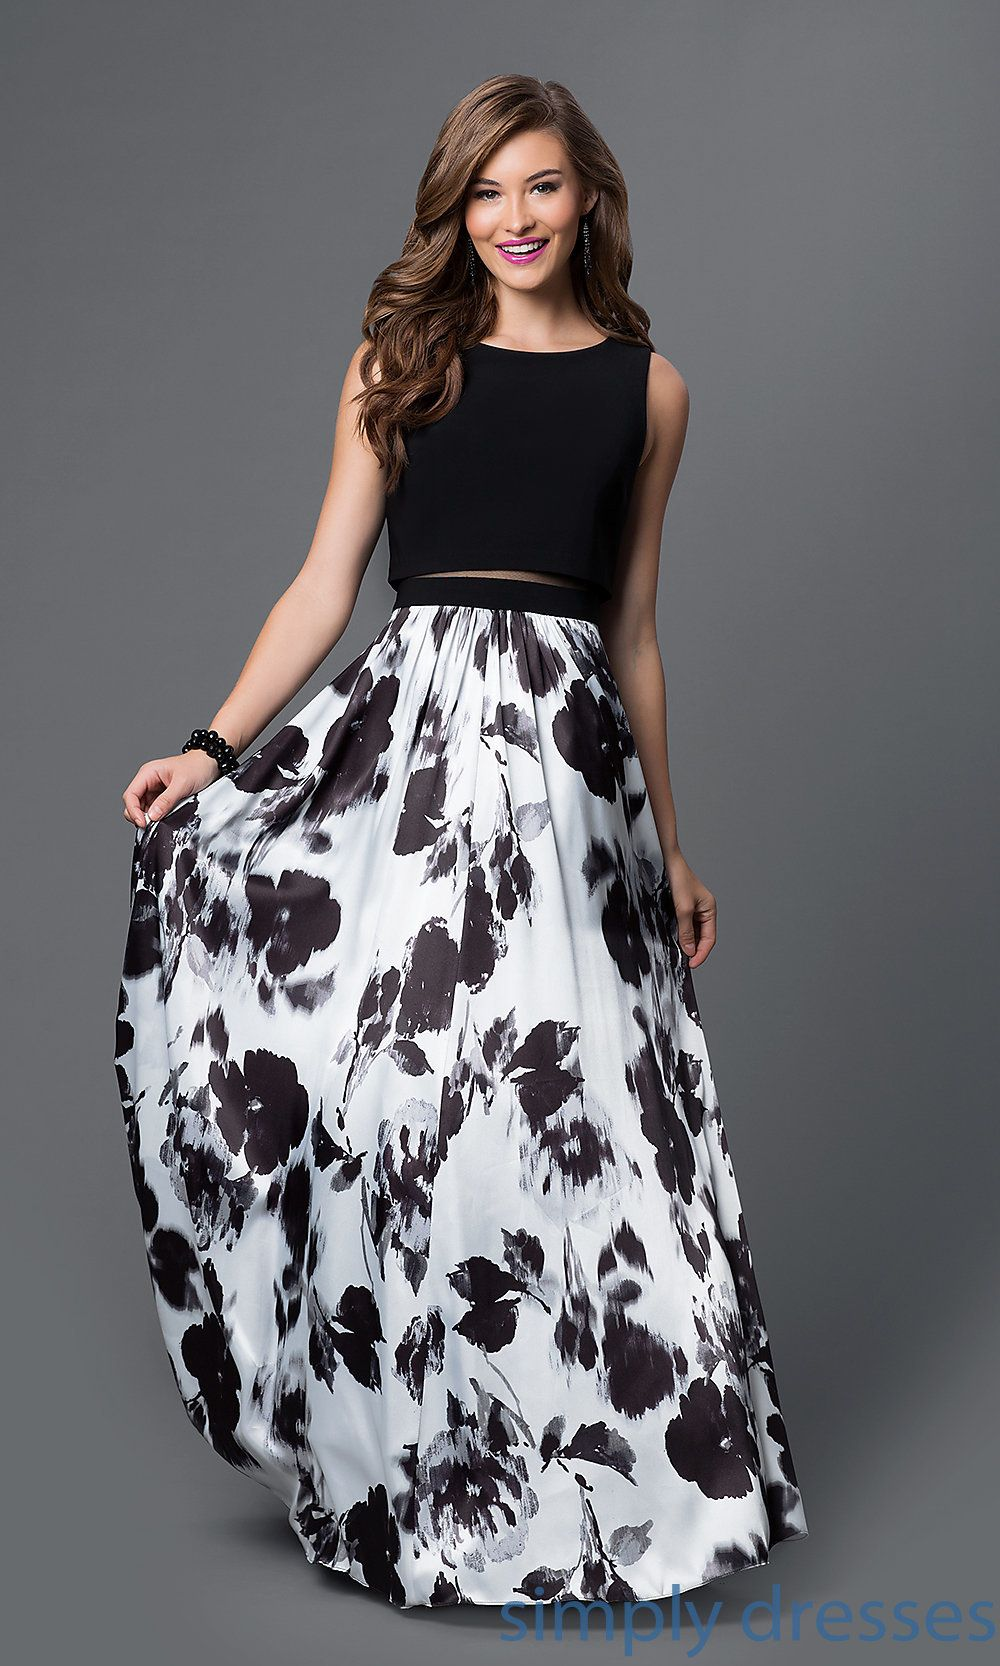 df8733ba4c96 Shop long floral-print evening gowns and black and white dresses at Simply  Dresses. Mock two-piece prom dresses with sheer mesh midriffs for formals.